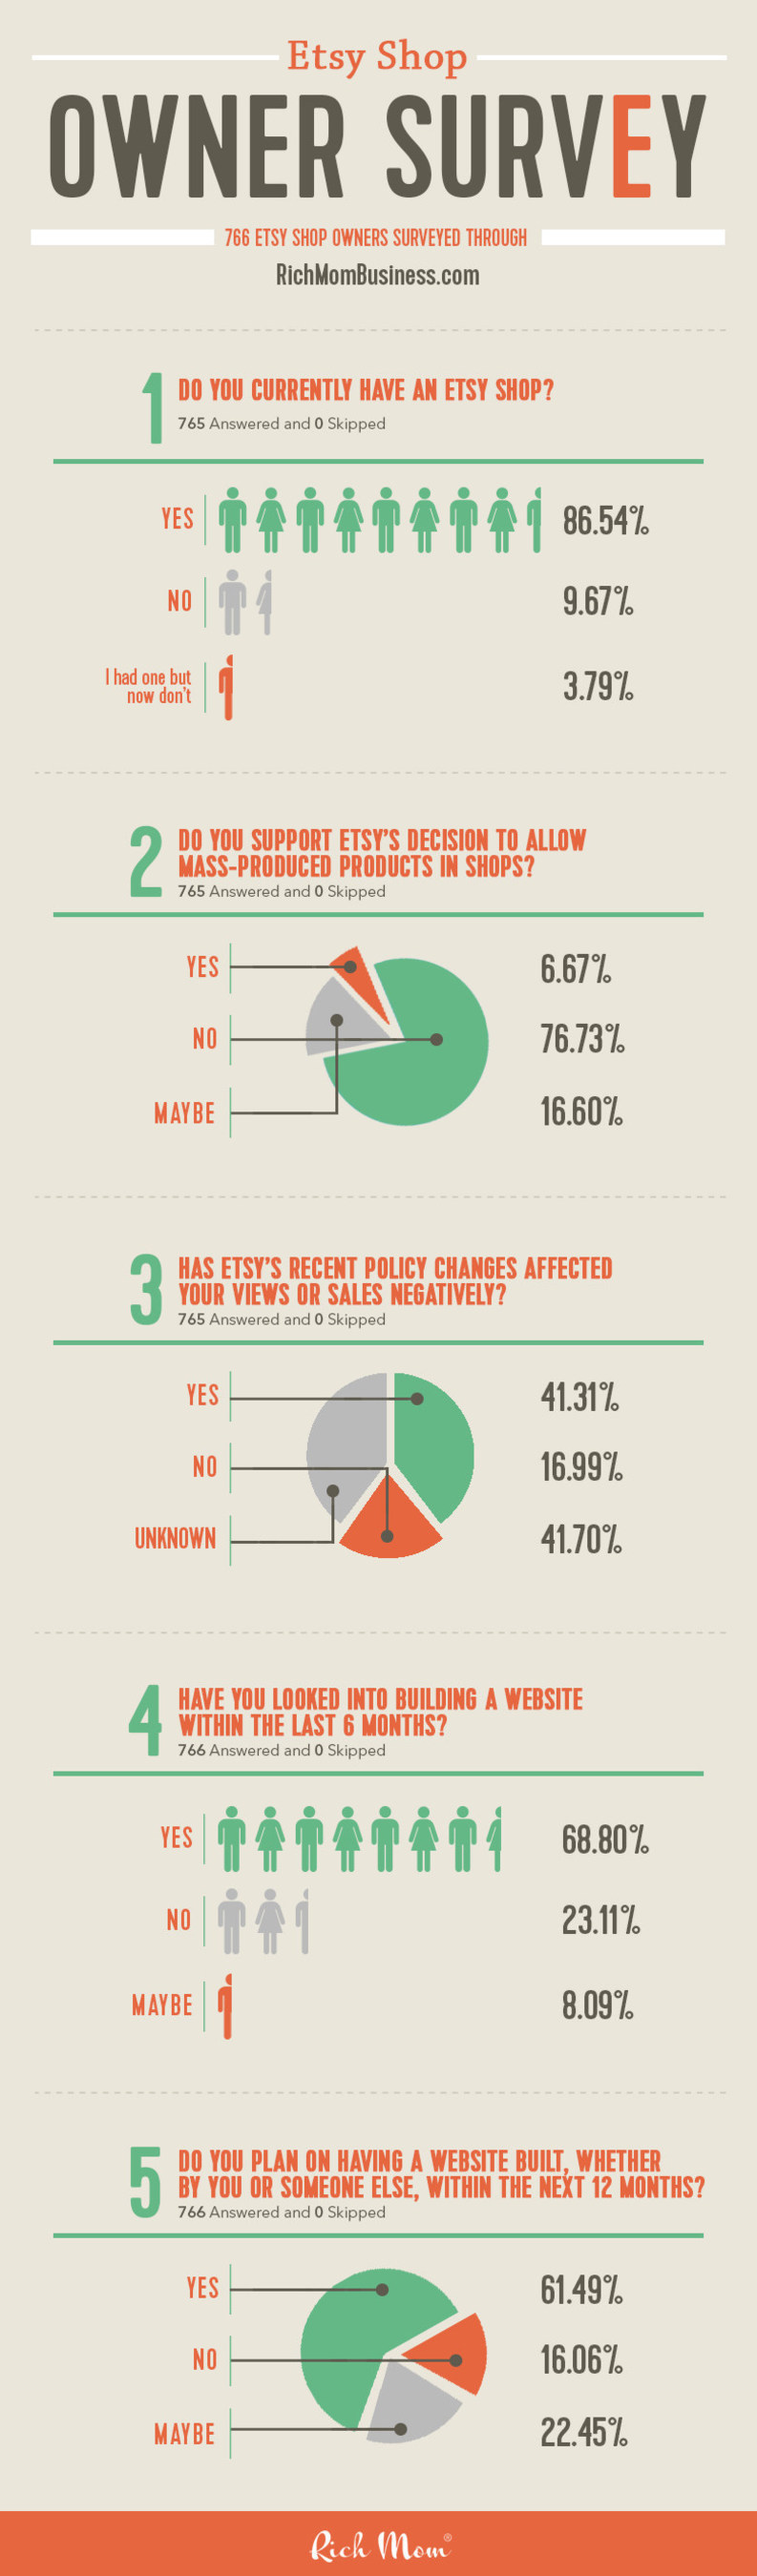 Etsy Seller Poll Released by Rich Mom® [INFOGRAPHIC]